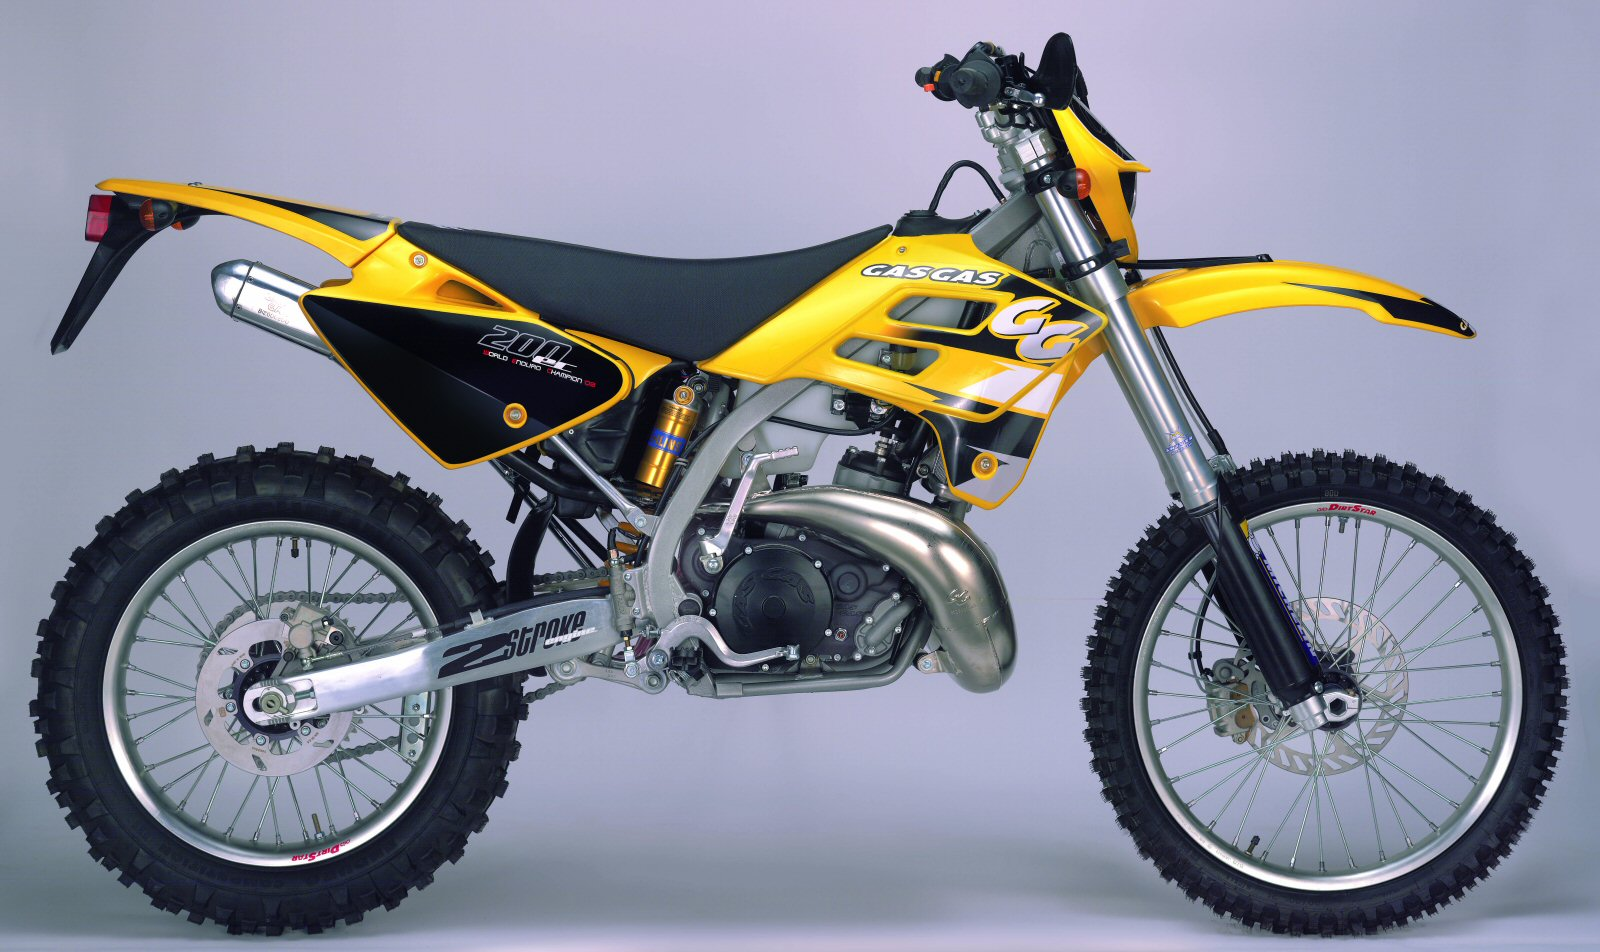 GAS GAS SM 450 2004 images #71268